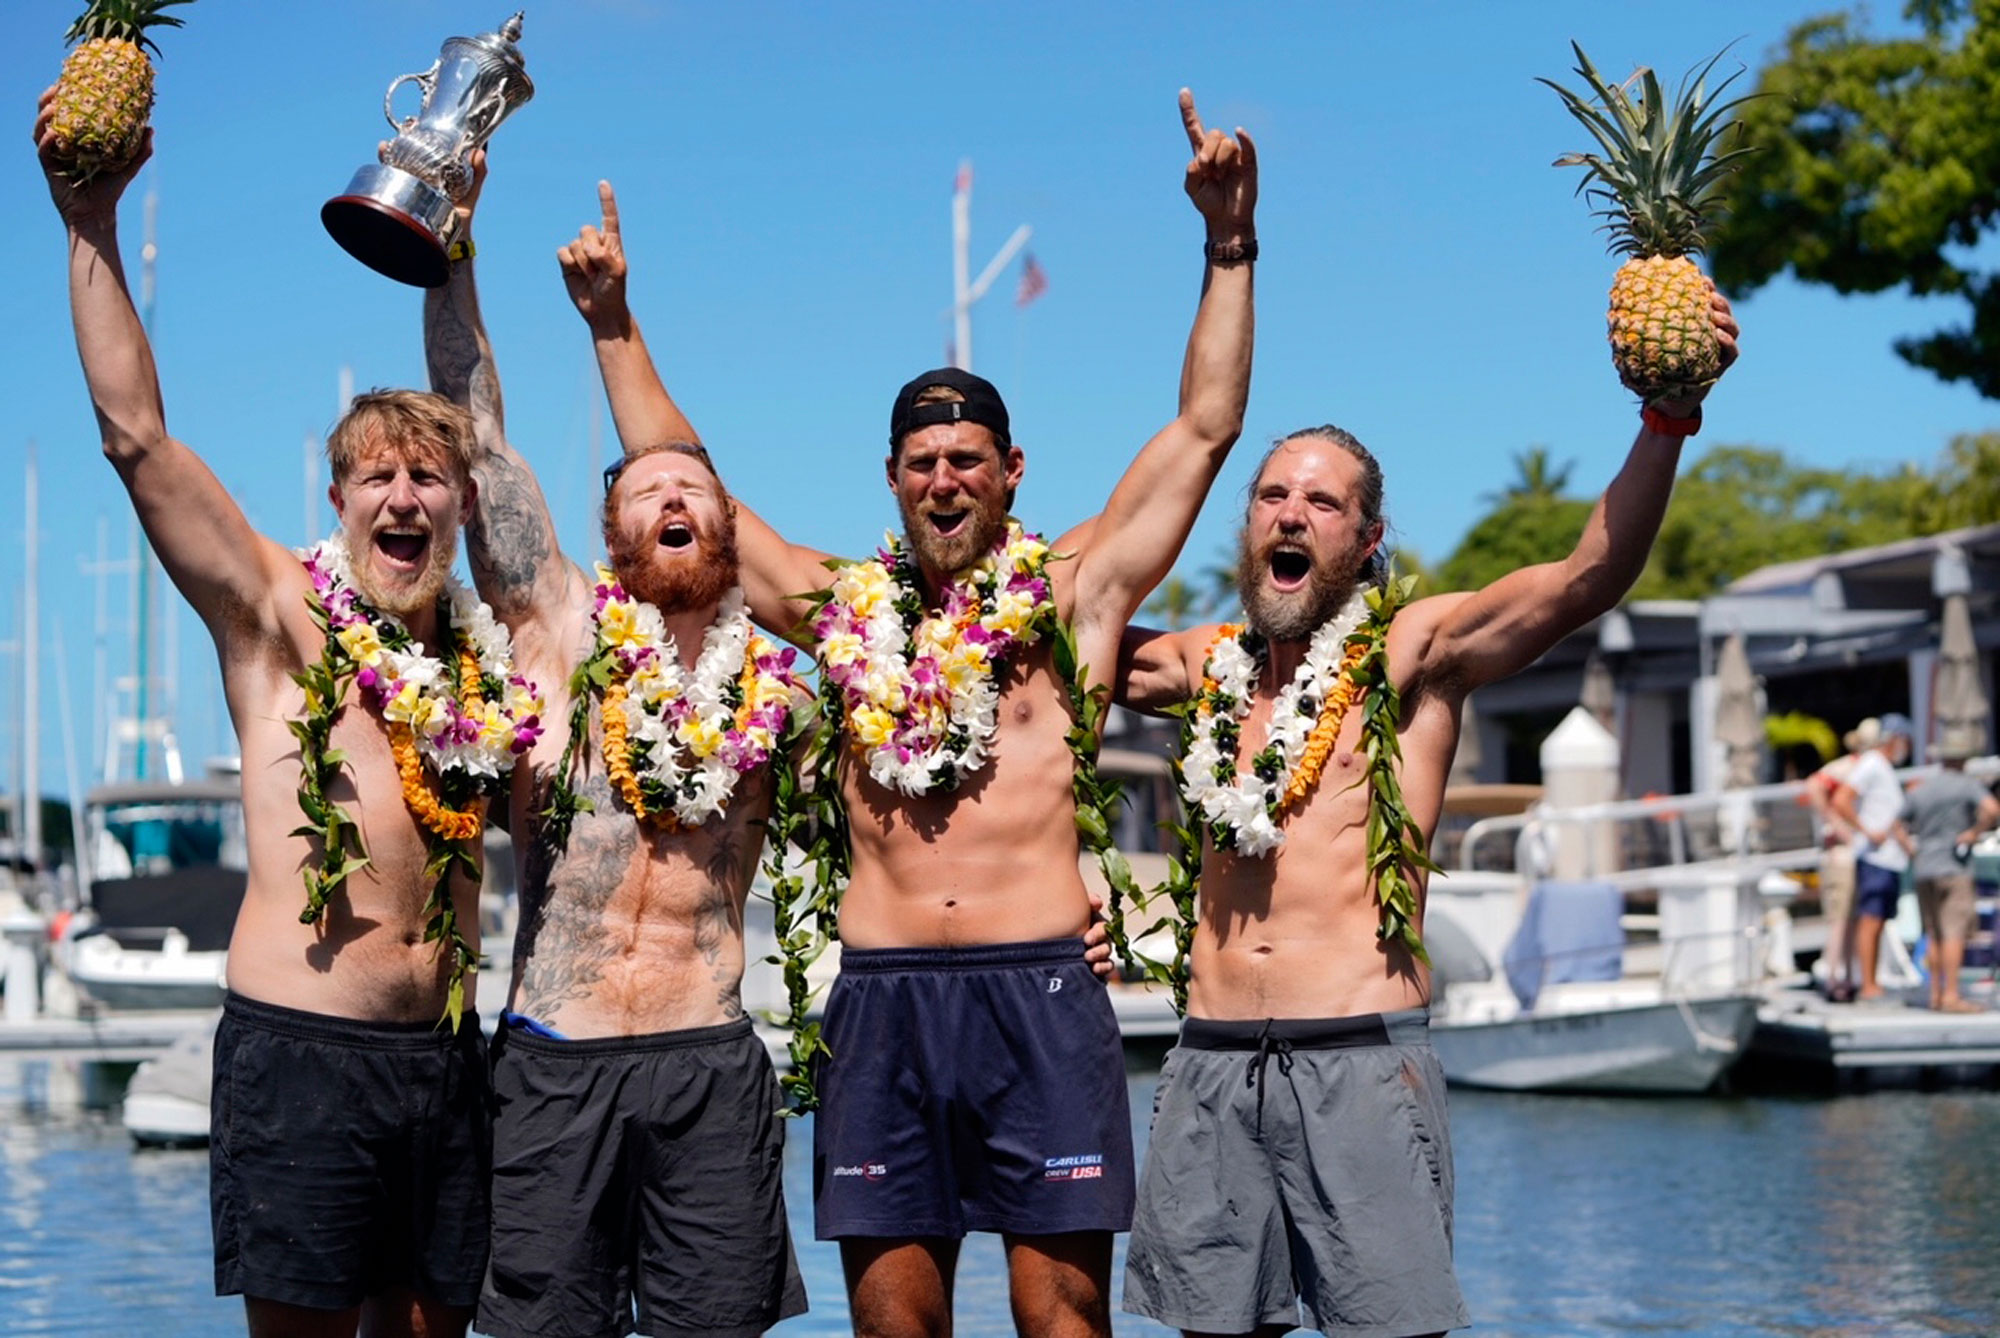 Rowing team completes journey from San Francisco to Honolulu in reported record time